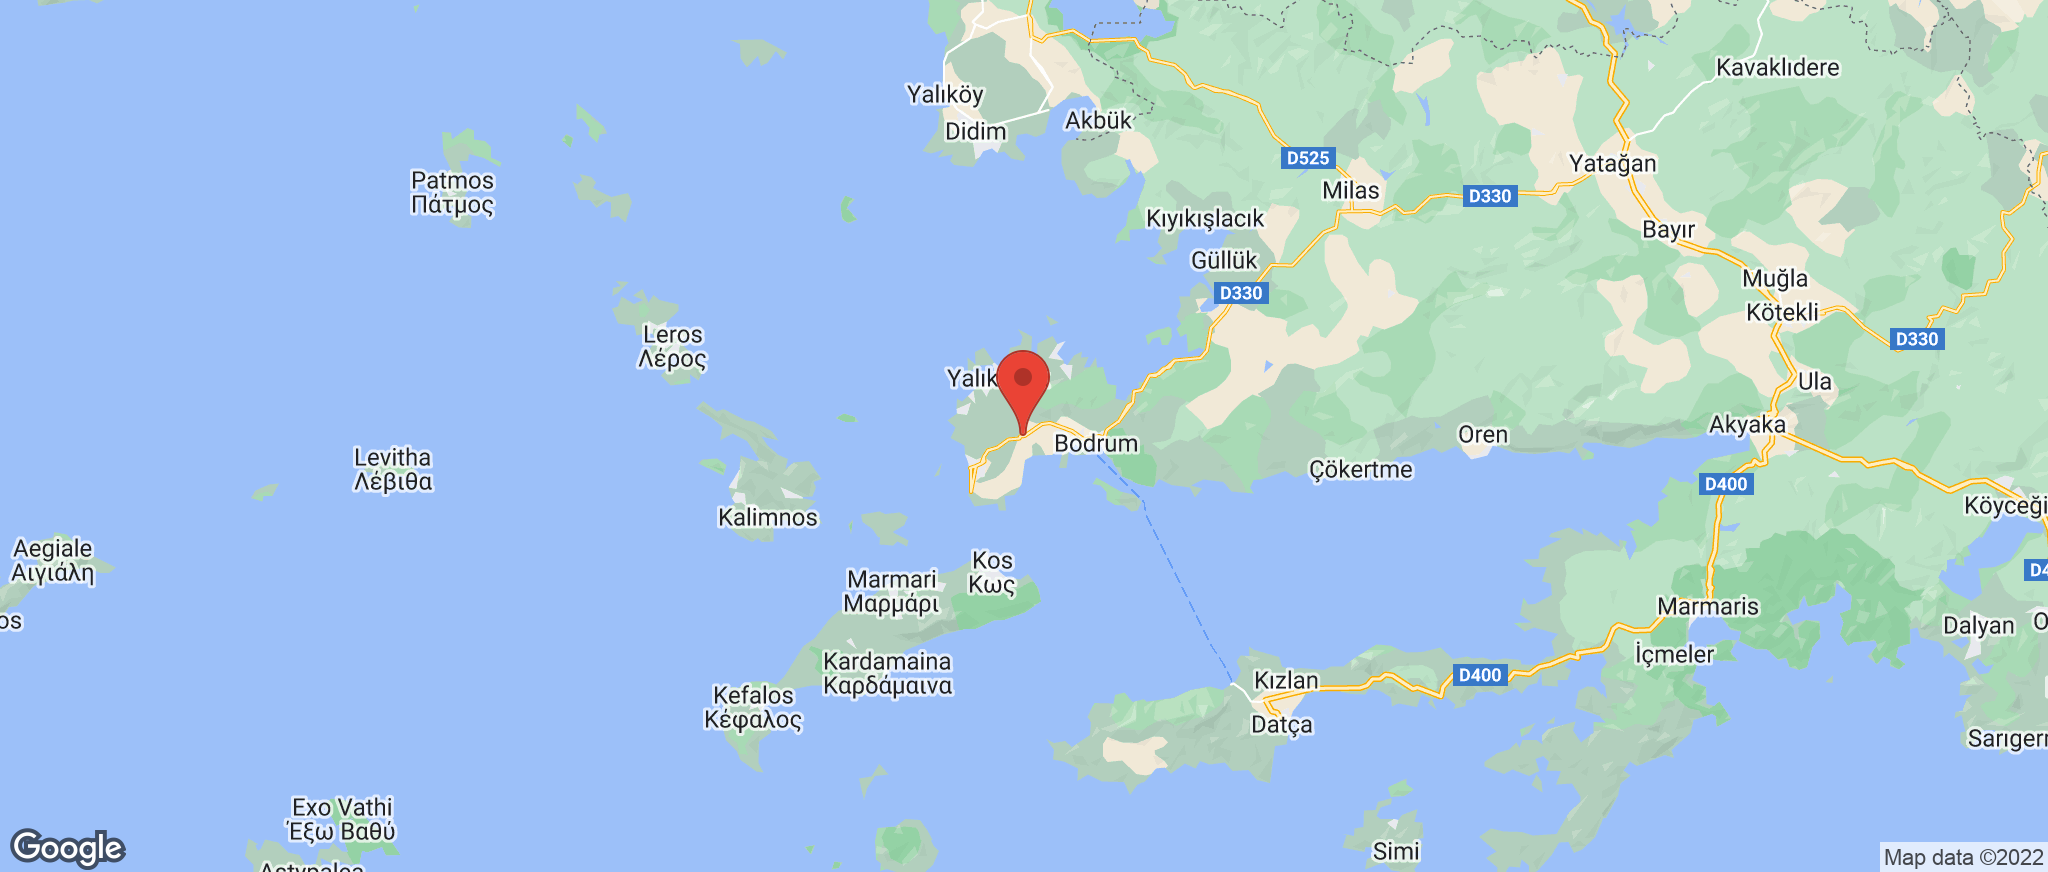 Map showing the location of Ortakent